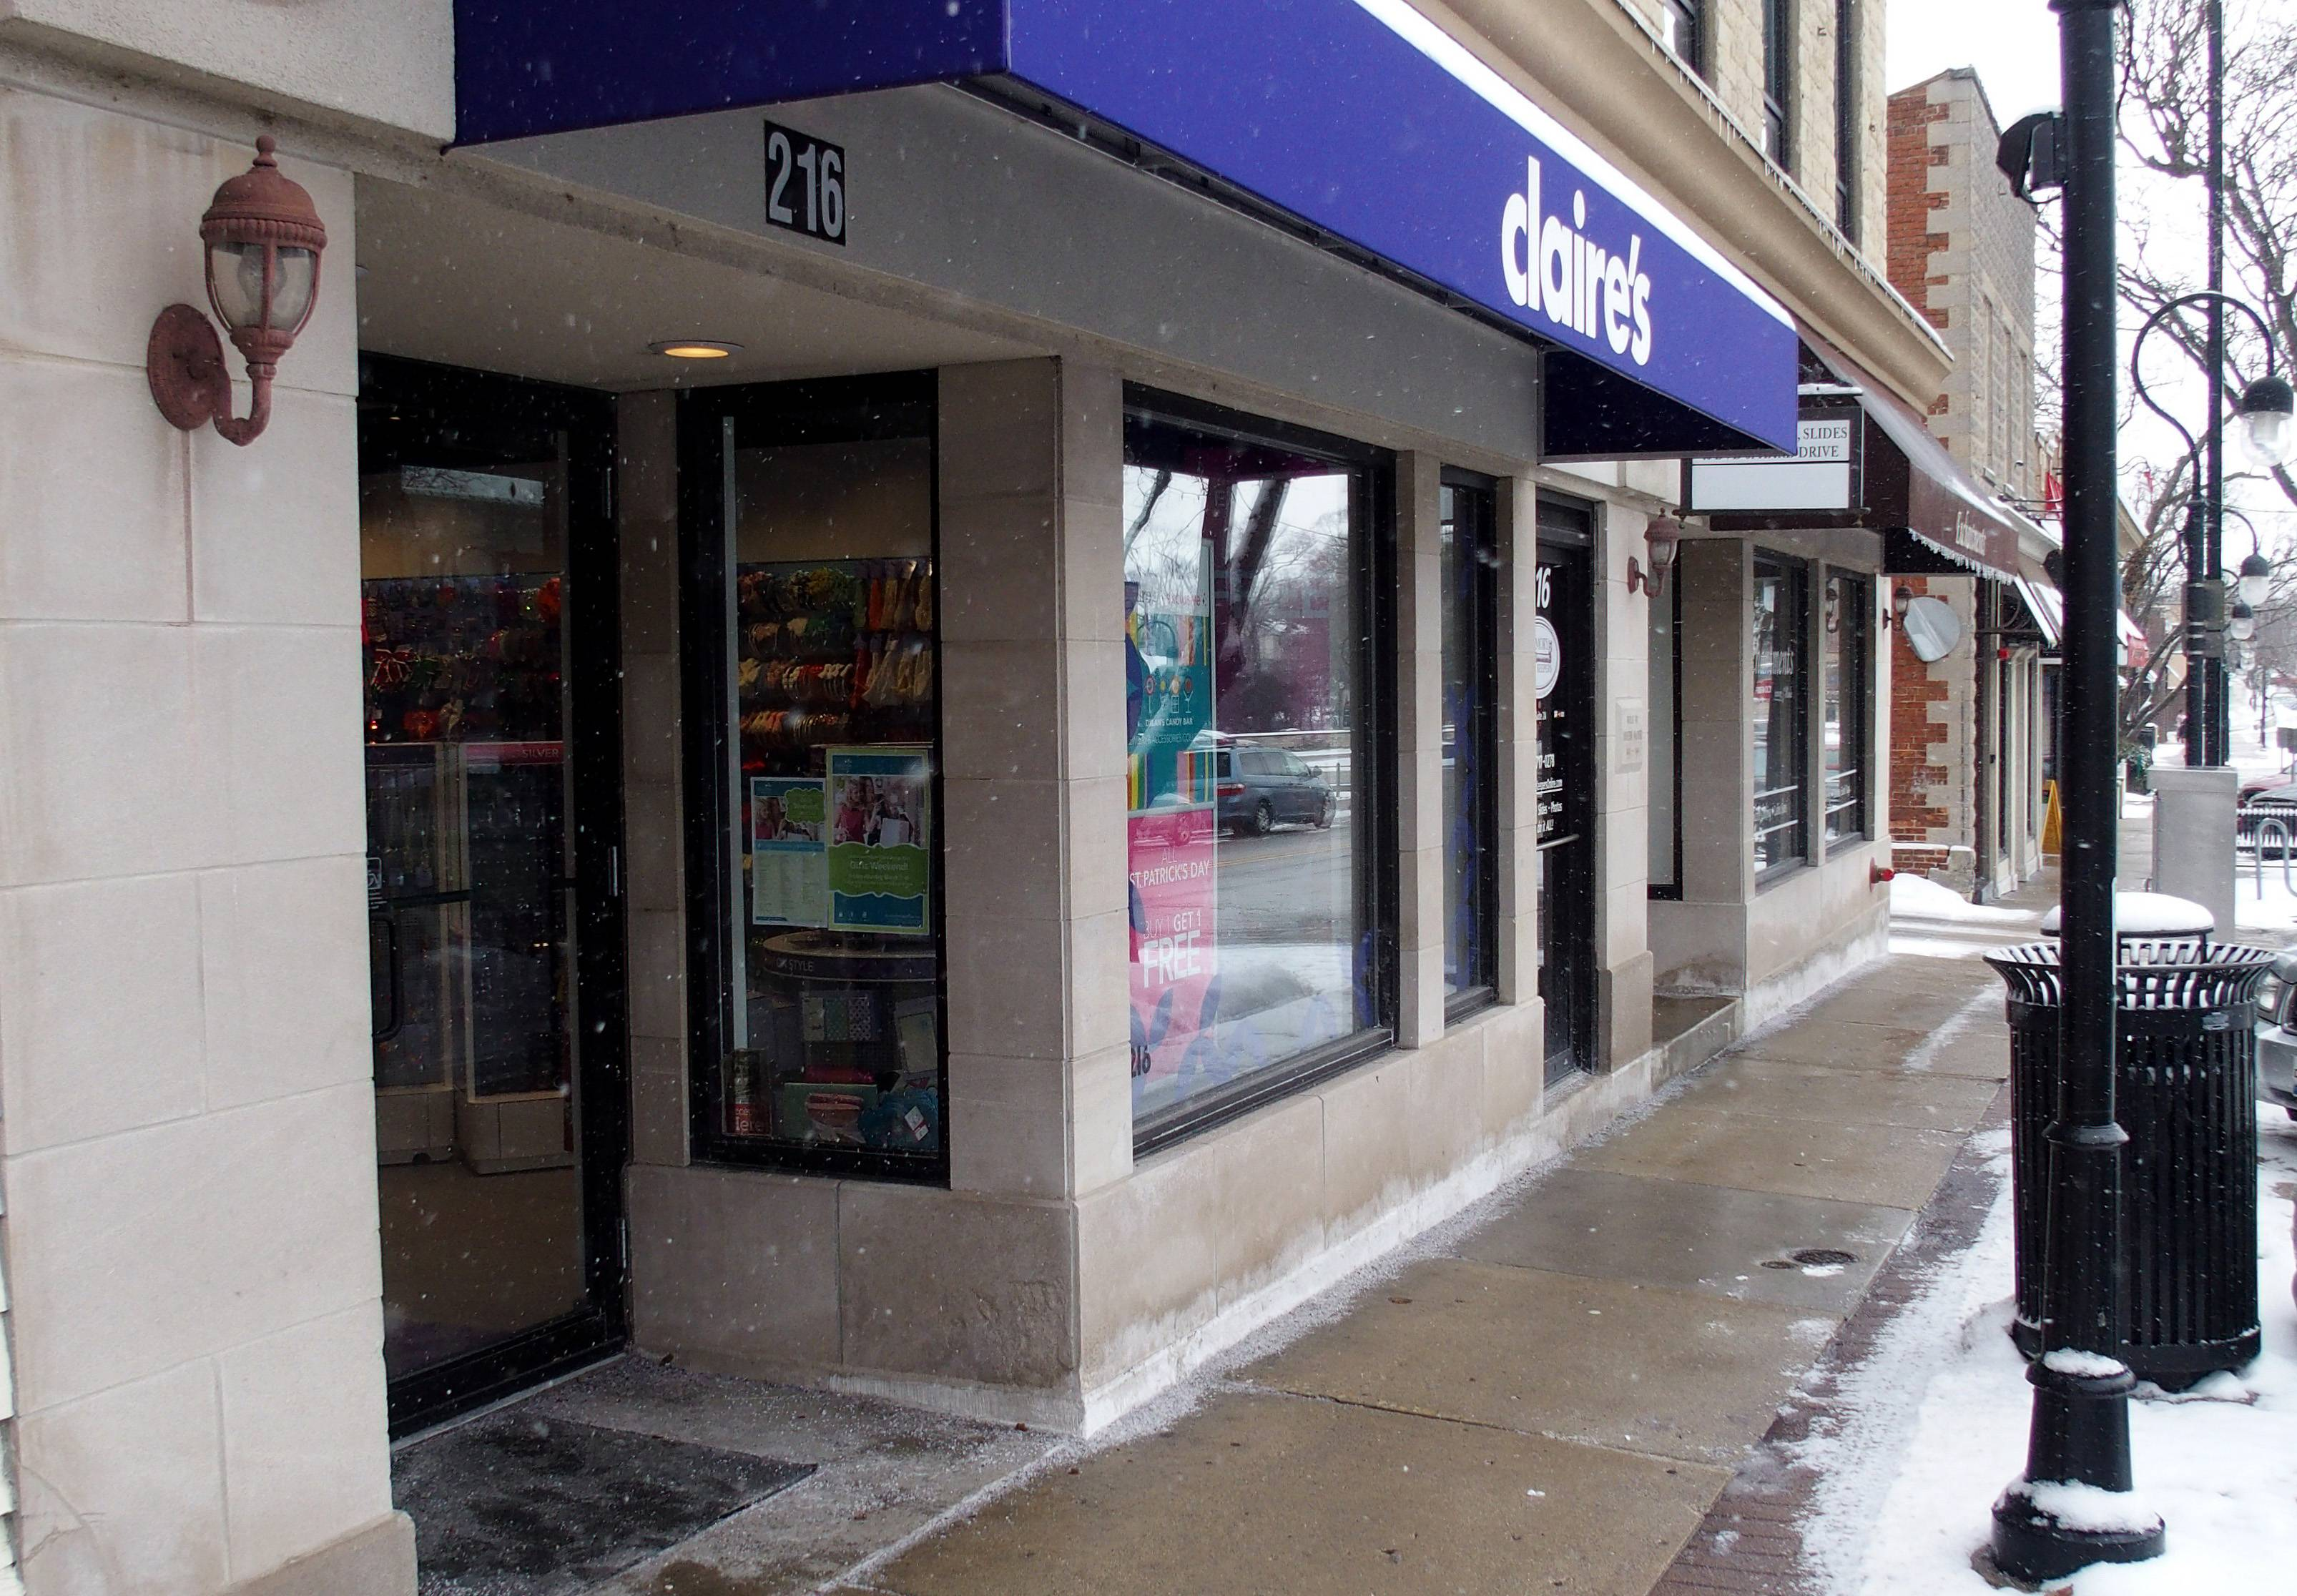 Naperville has loosened its prohibition on body piercing and tattoo businesses to allow the new Claire's shop in downtown to provide ear-piercing services as it does at its more than 3,000 other locations. The city's ordinance no longer applies to ear piercing anywhere in Naperville.